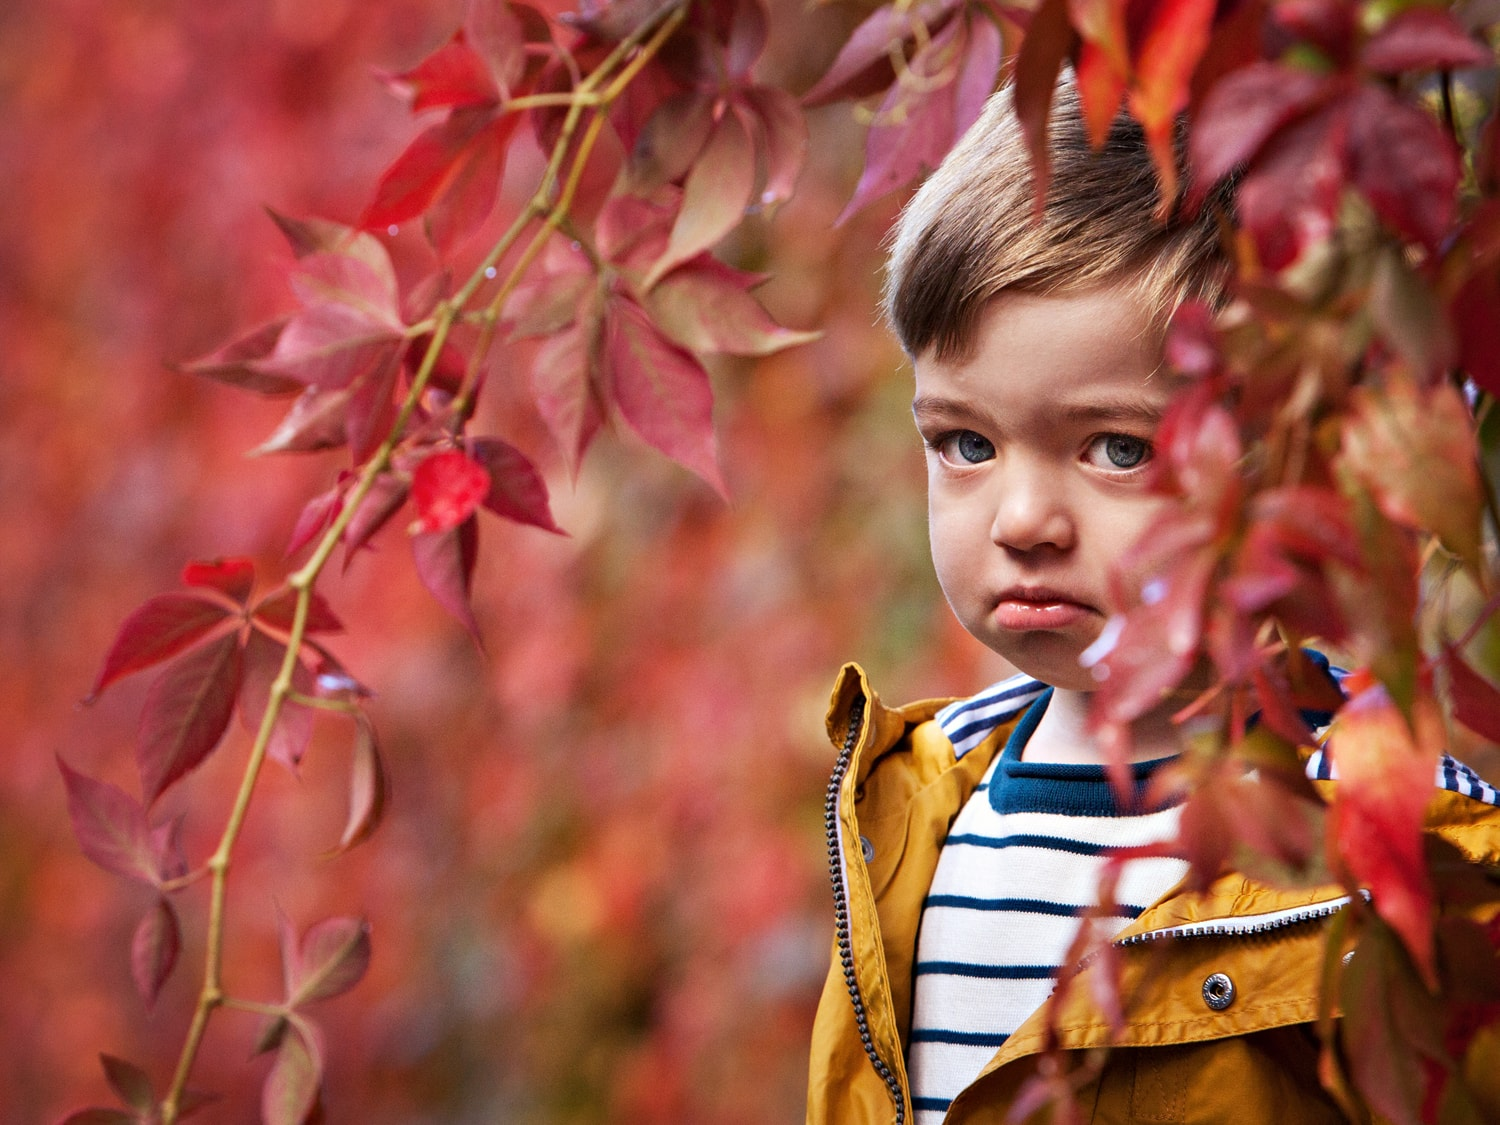 Little boy sulking surrounded by Autumn leaves